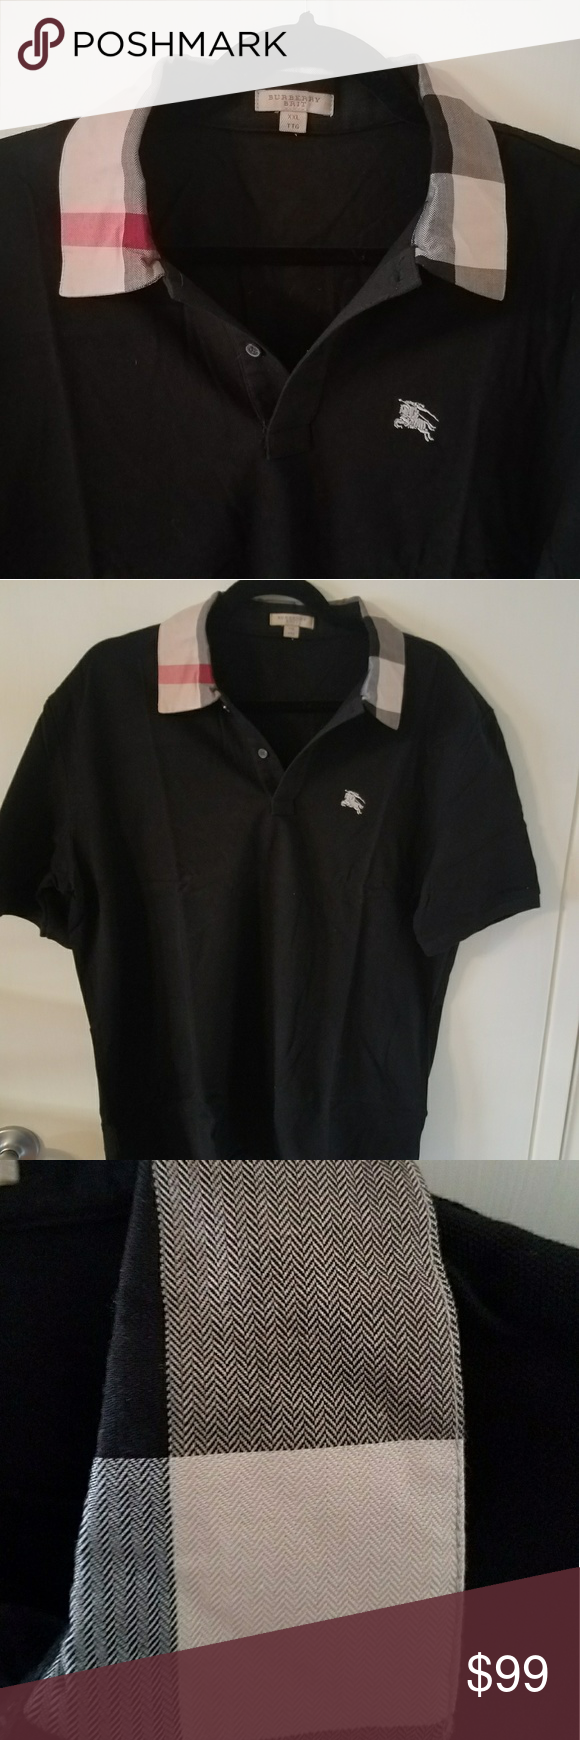 b7ee33808 100% Authentic Burberry Brit polo Shirt XL NEW 100% Authentic Burberry Brit  polo Shirt